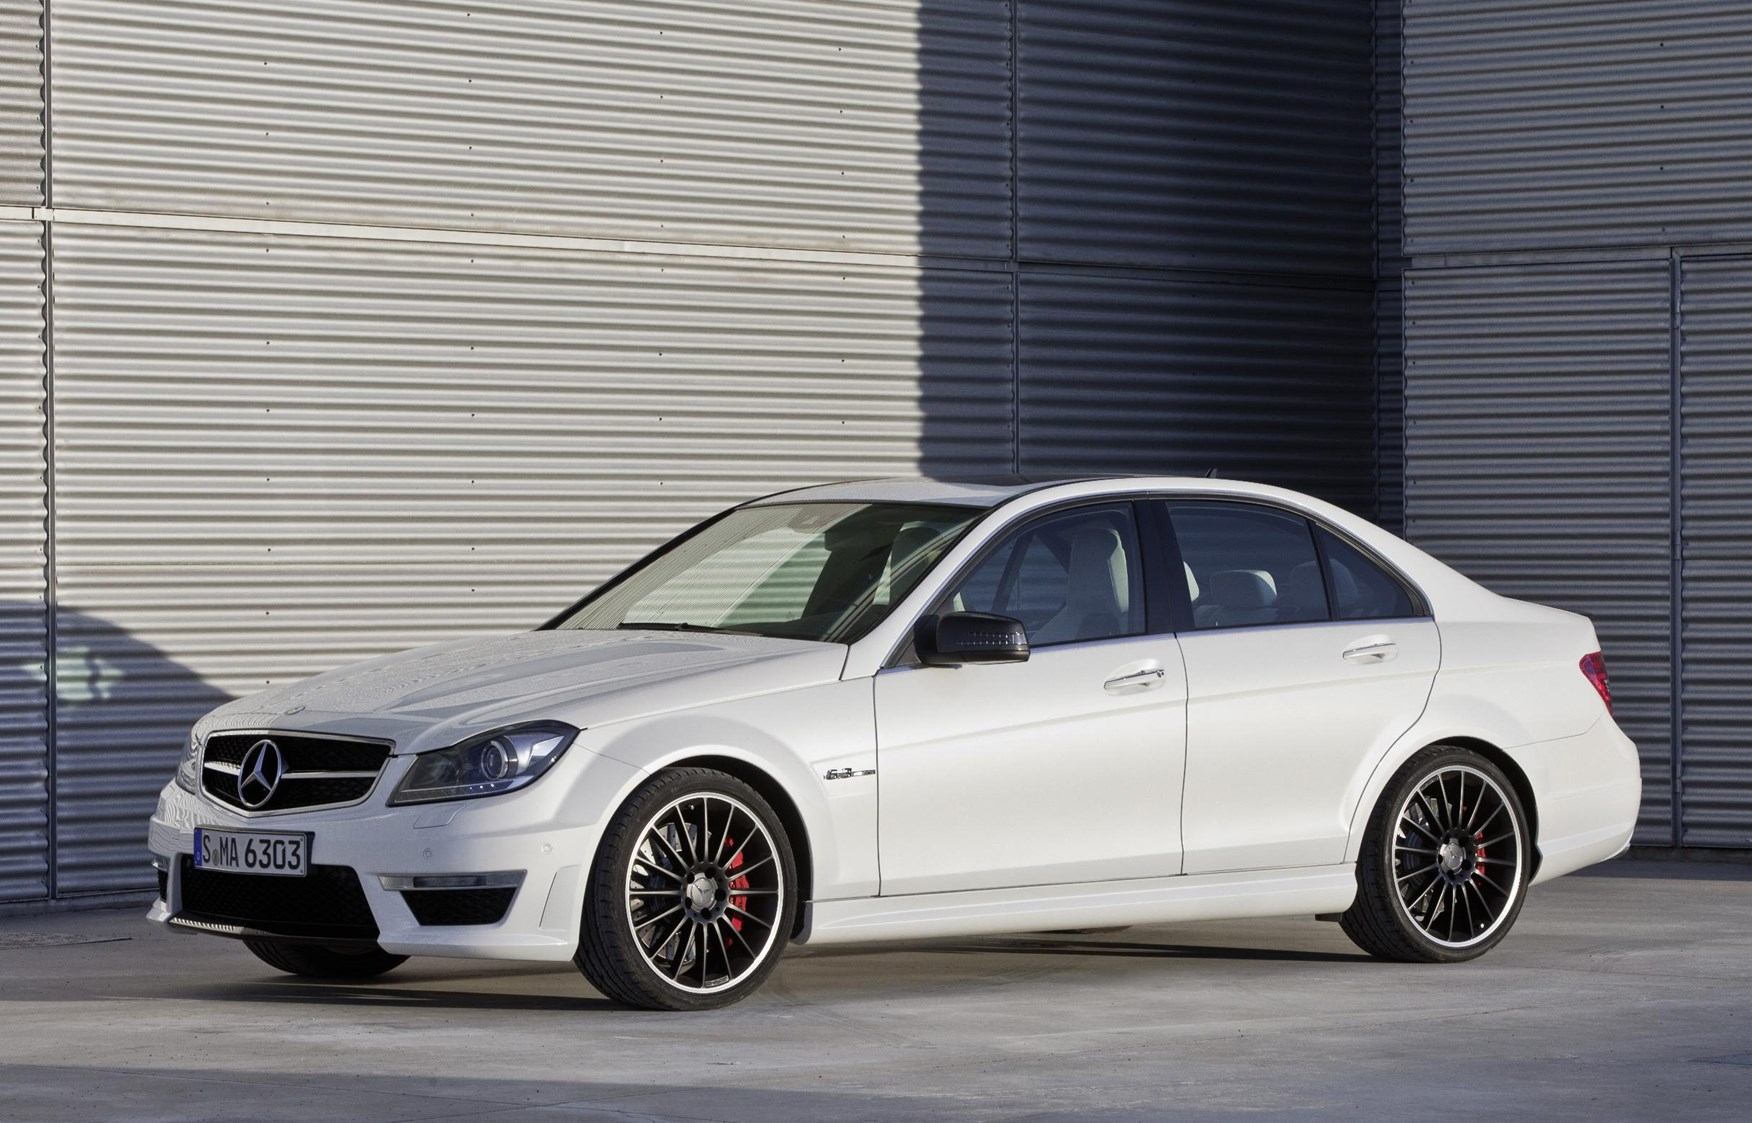 Mercedes Benz C Class Amg Review 2011 2015 Parkers